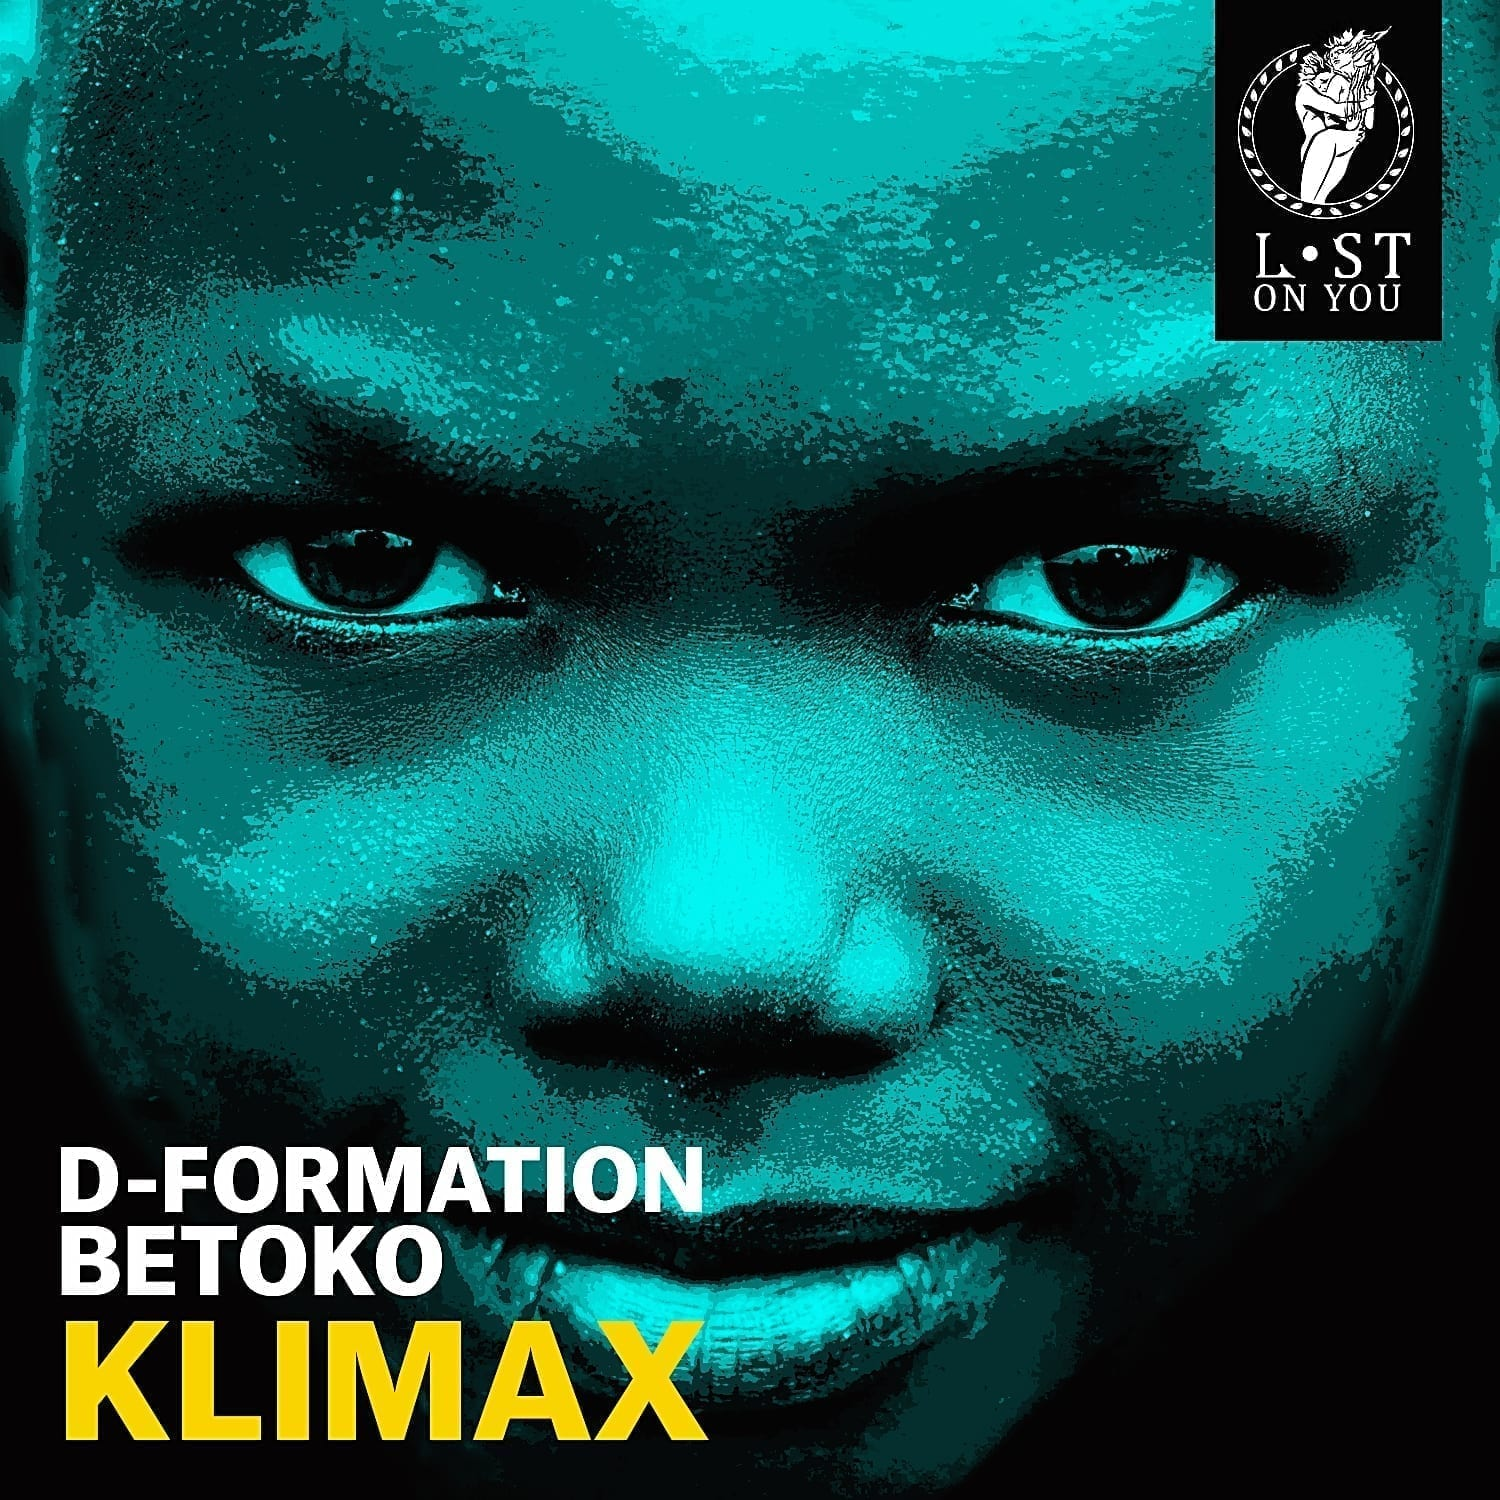 A soaring crescendo from Lost on You with D - Formation and Betoko's Klimax EP